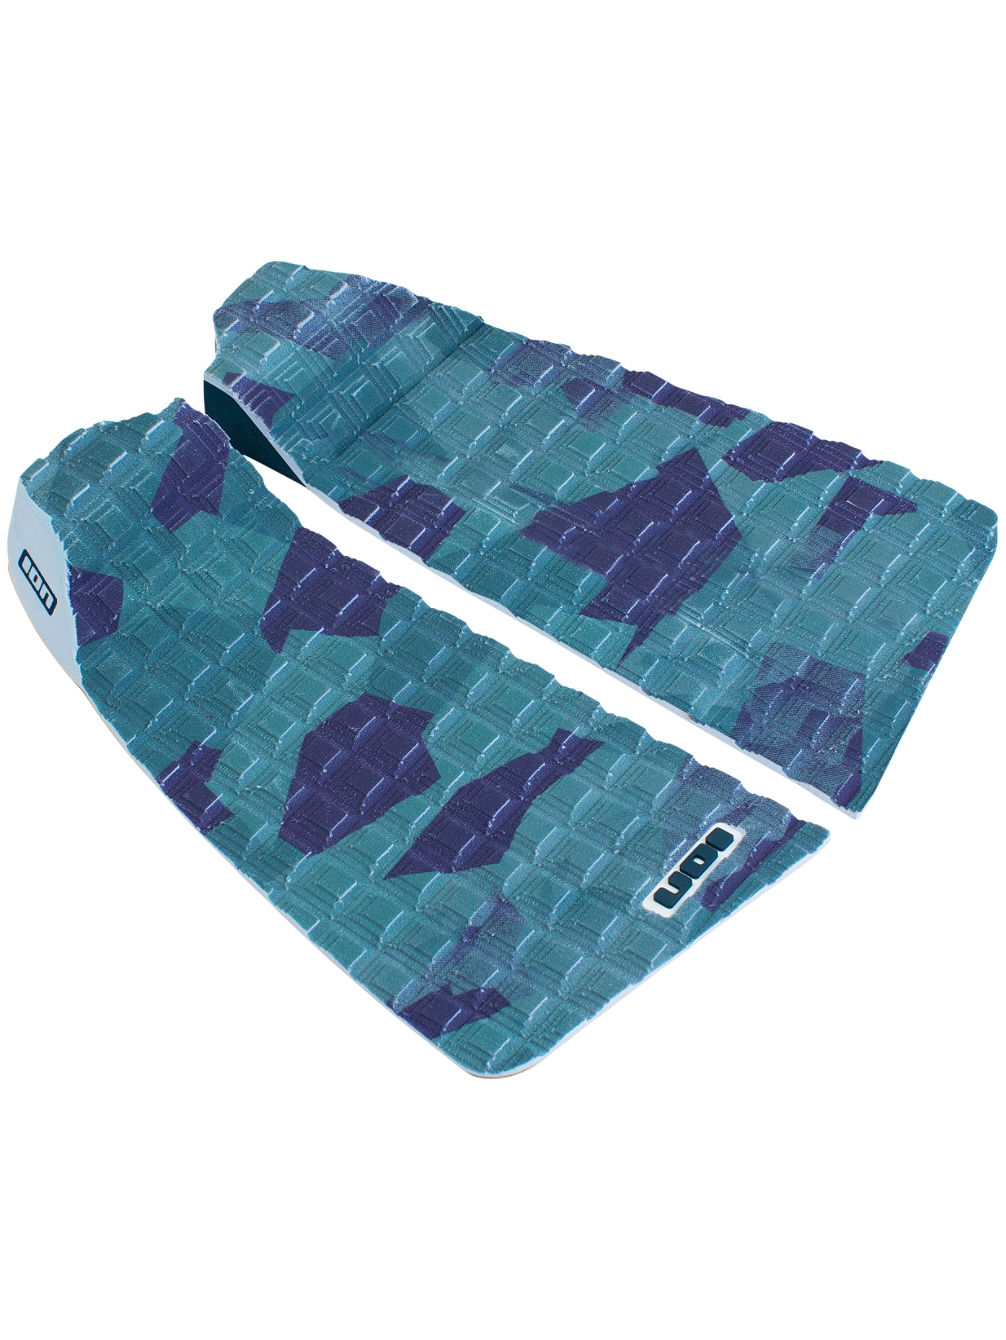 Camouflage (2Pcs) Traction Tail Pad